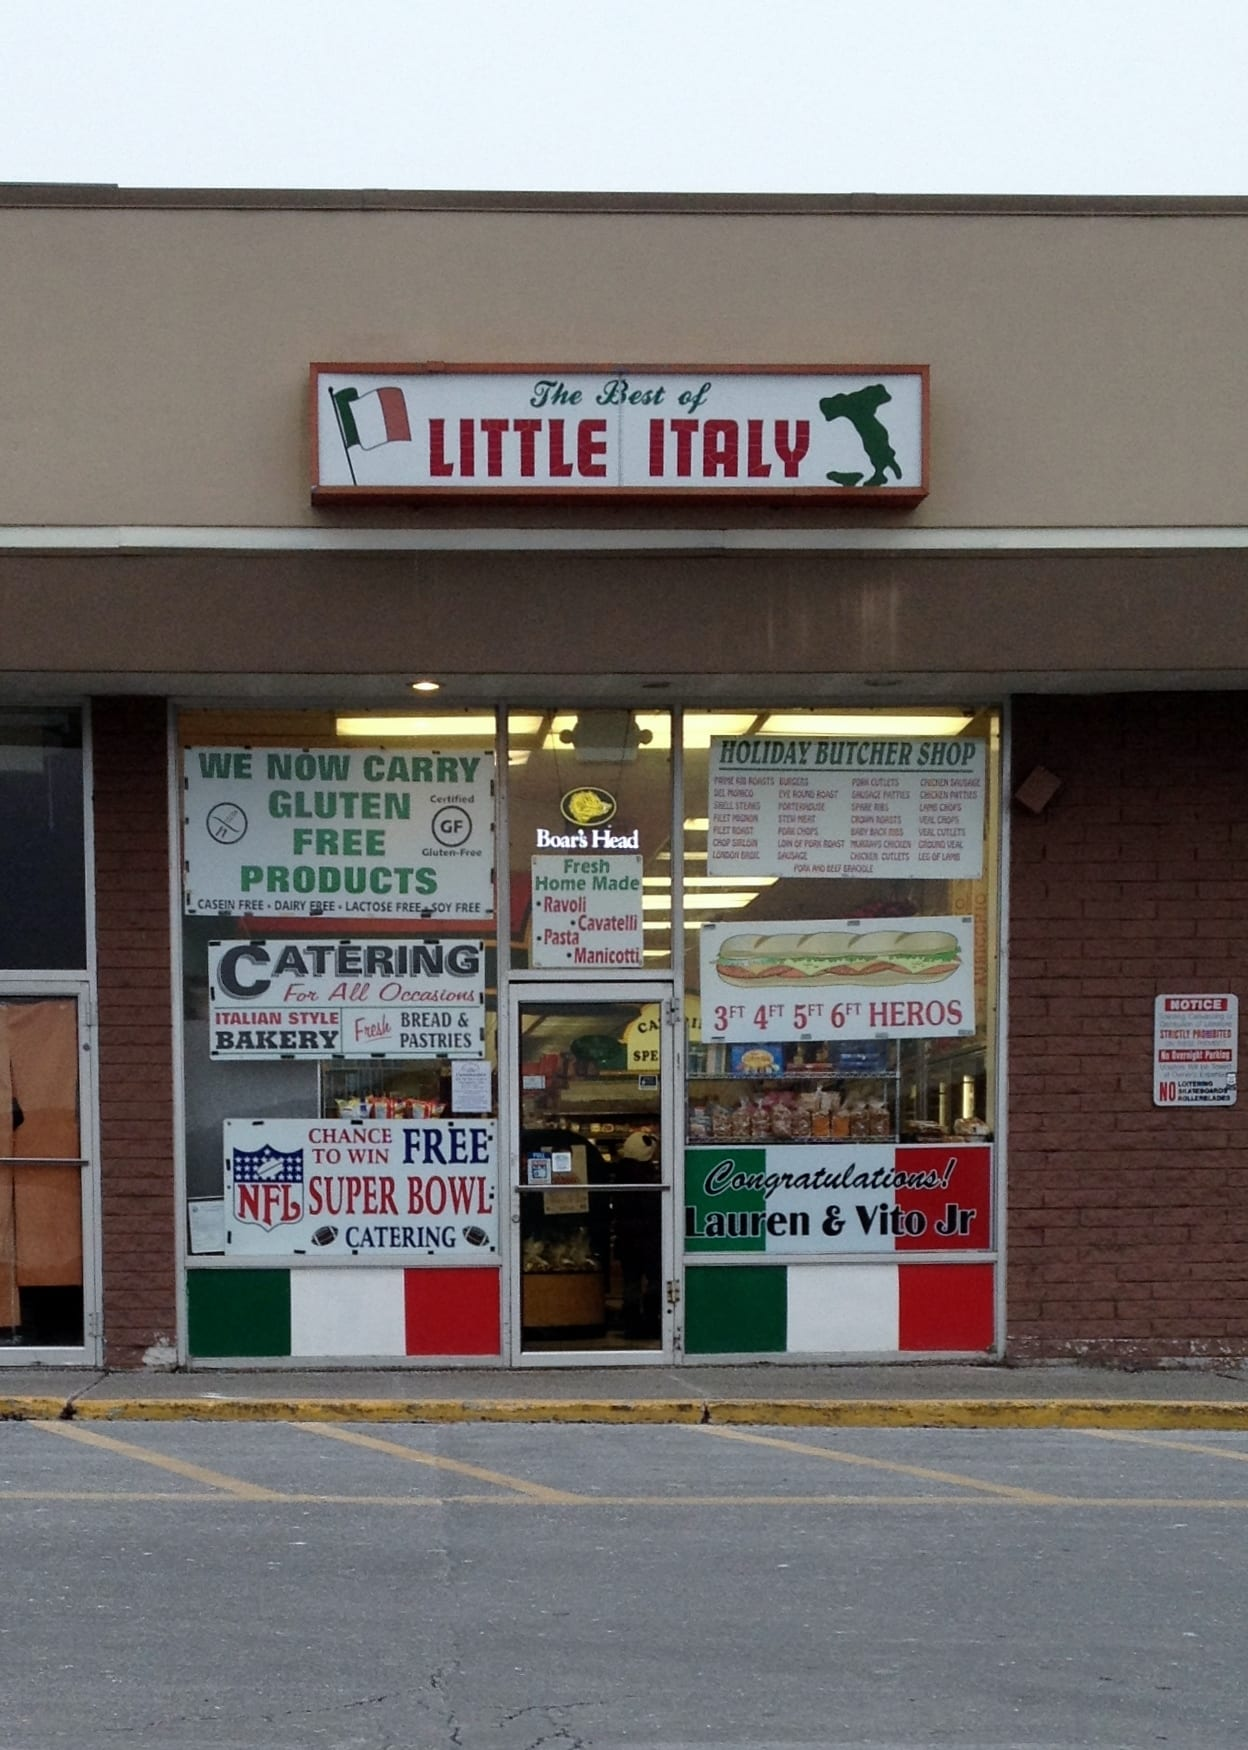 The Best of Little Italy